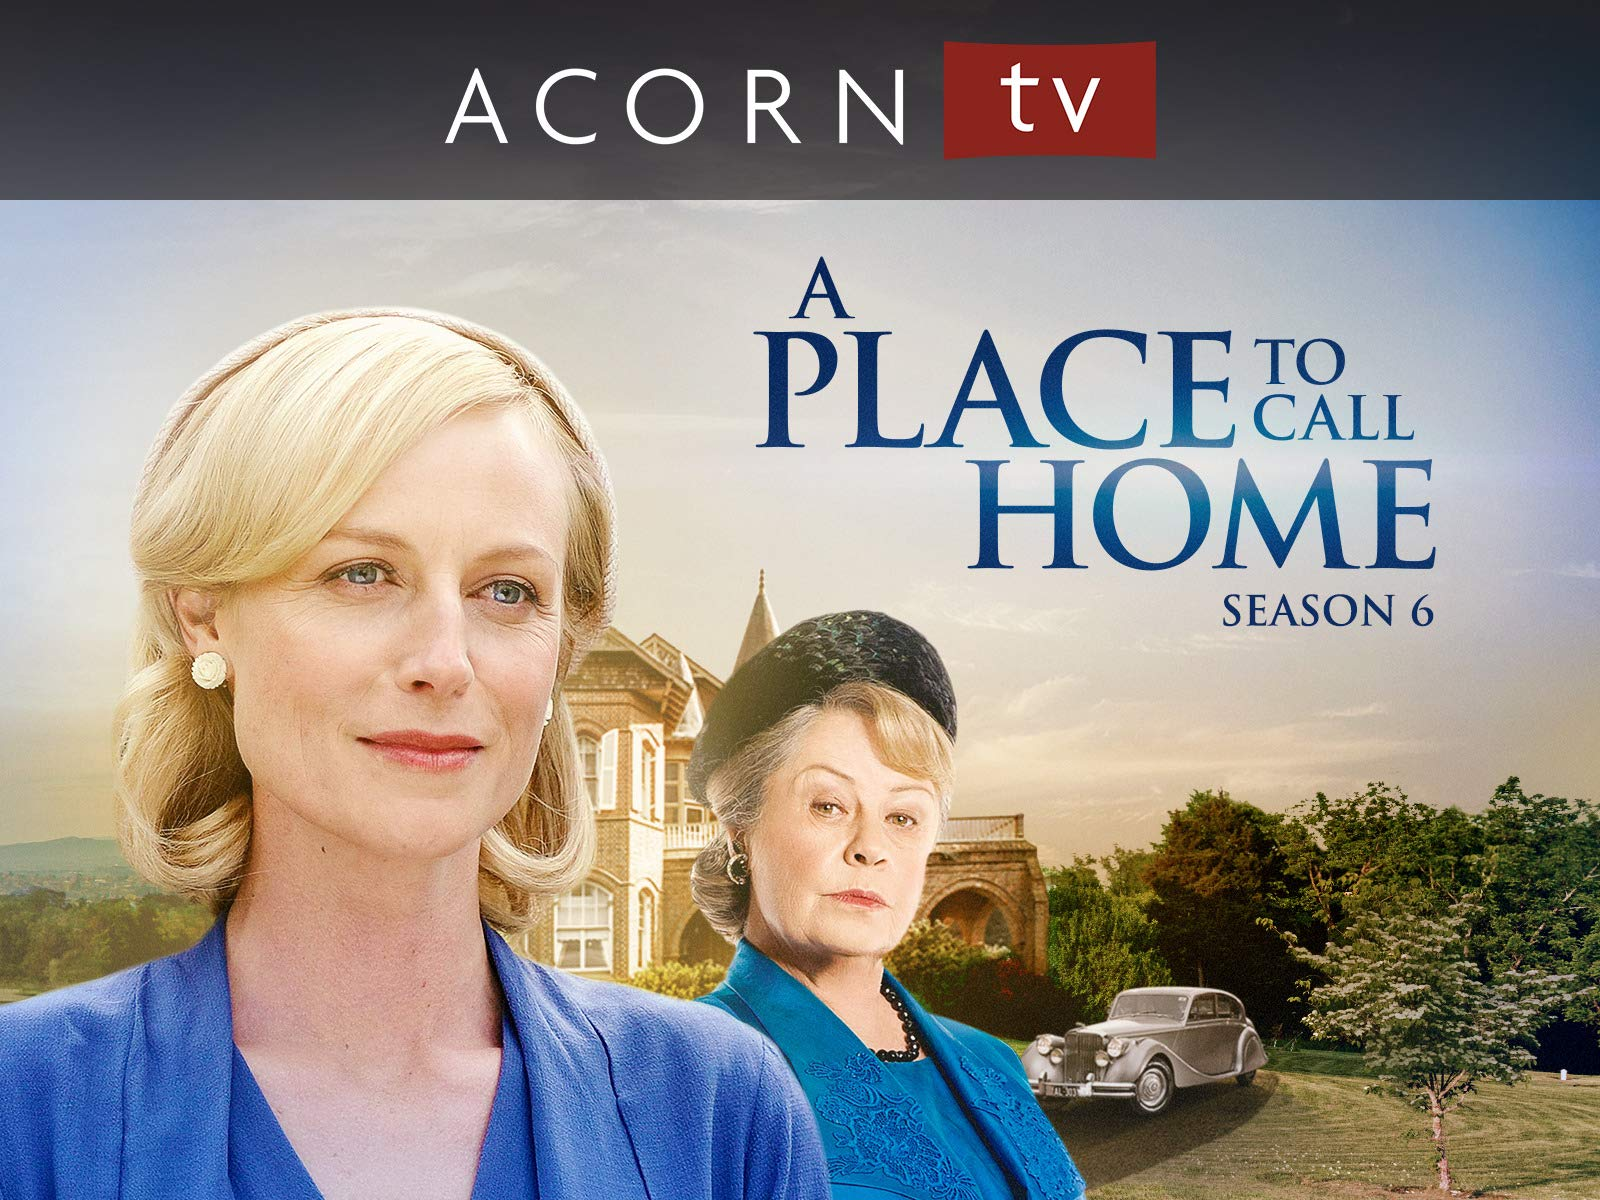 a place to call home series 1 buy online drama buy a place to call home A Place to Call Home. Season 6